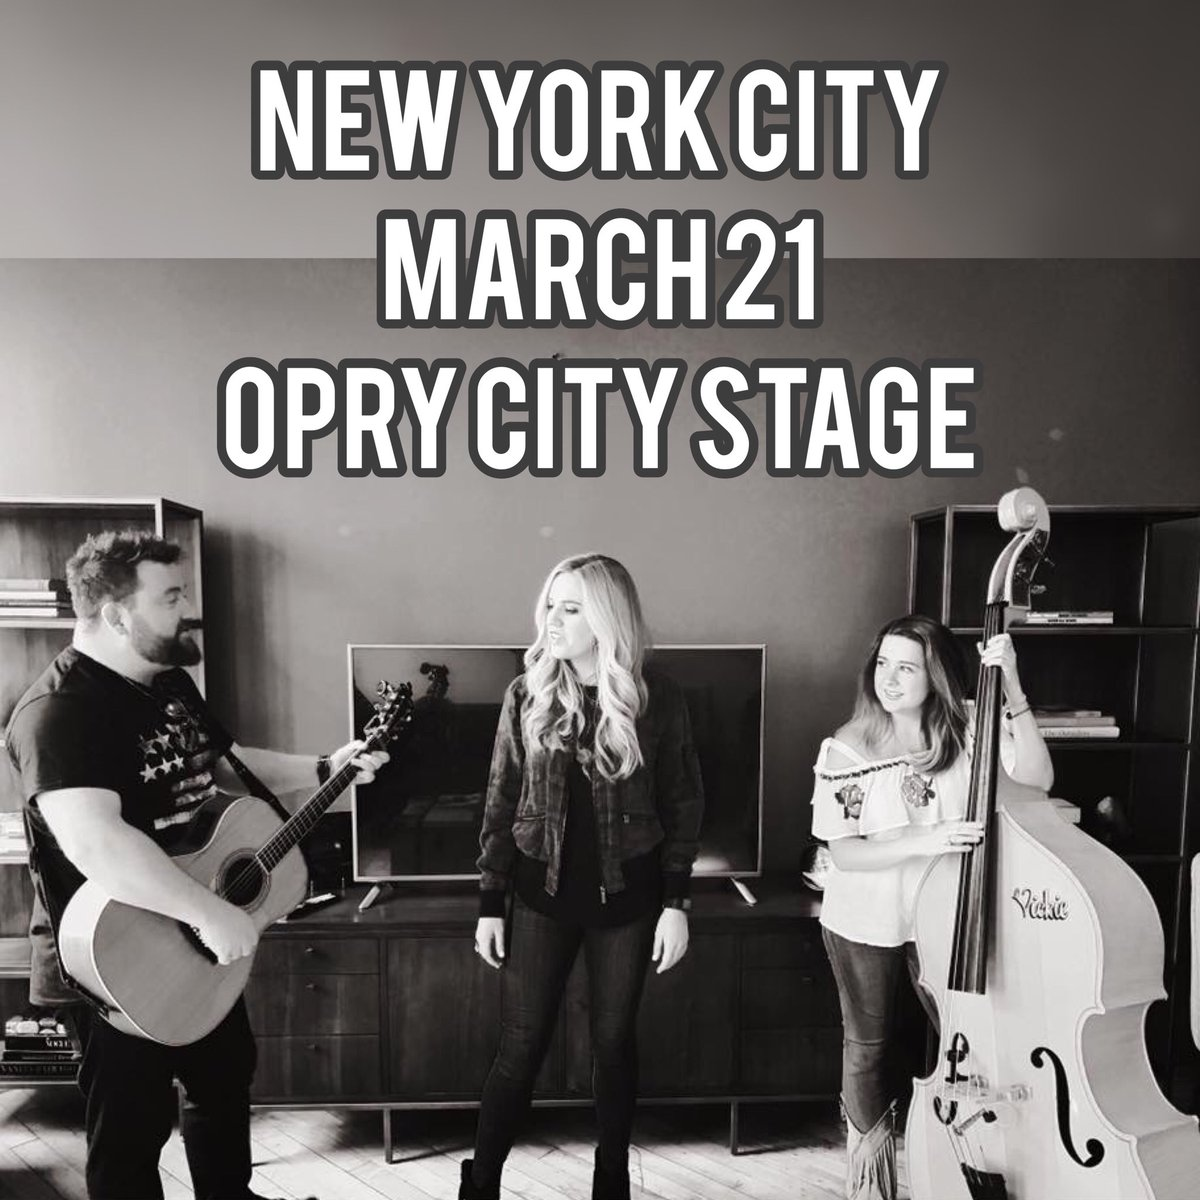 NYC - who's coming out this Wednesday?...